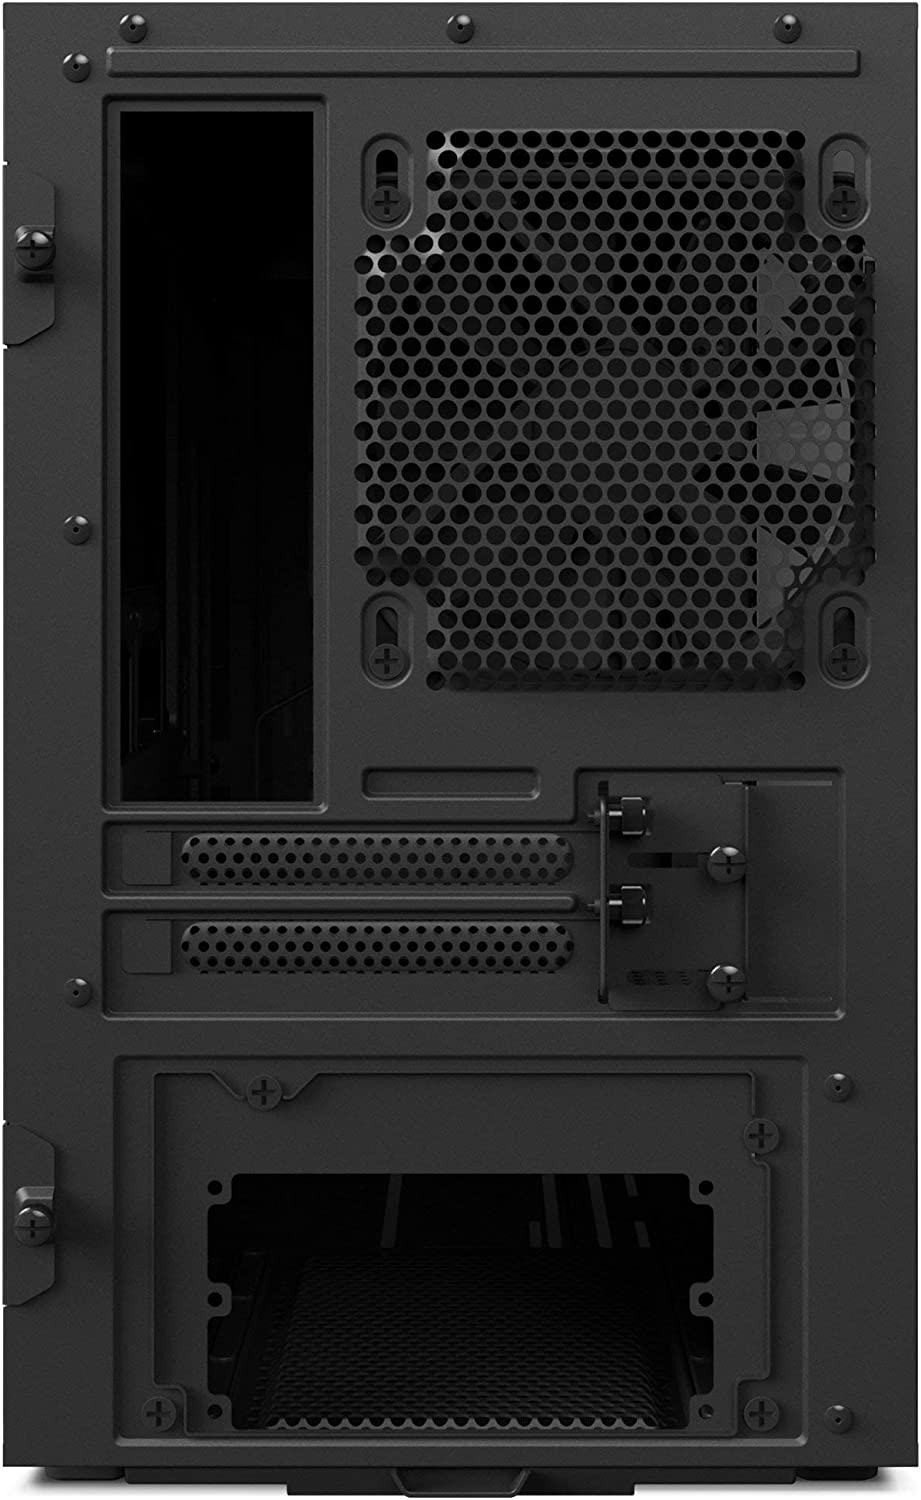 Tempered Glass Panel Black Mini-ITX PC Gaming Case Renewed Enhanced Cable Management System NZXT H200 Water Cooling Ready 2018 Model